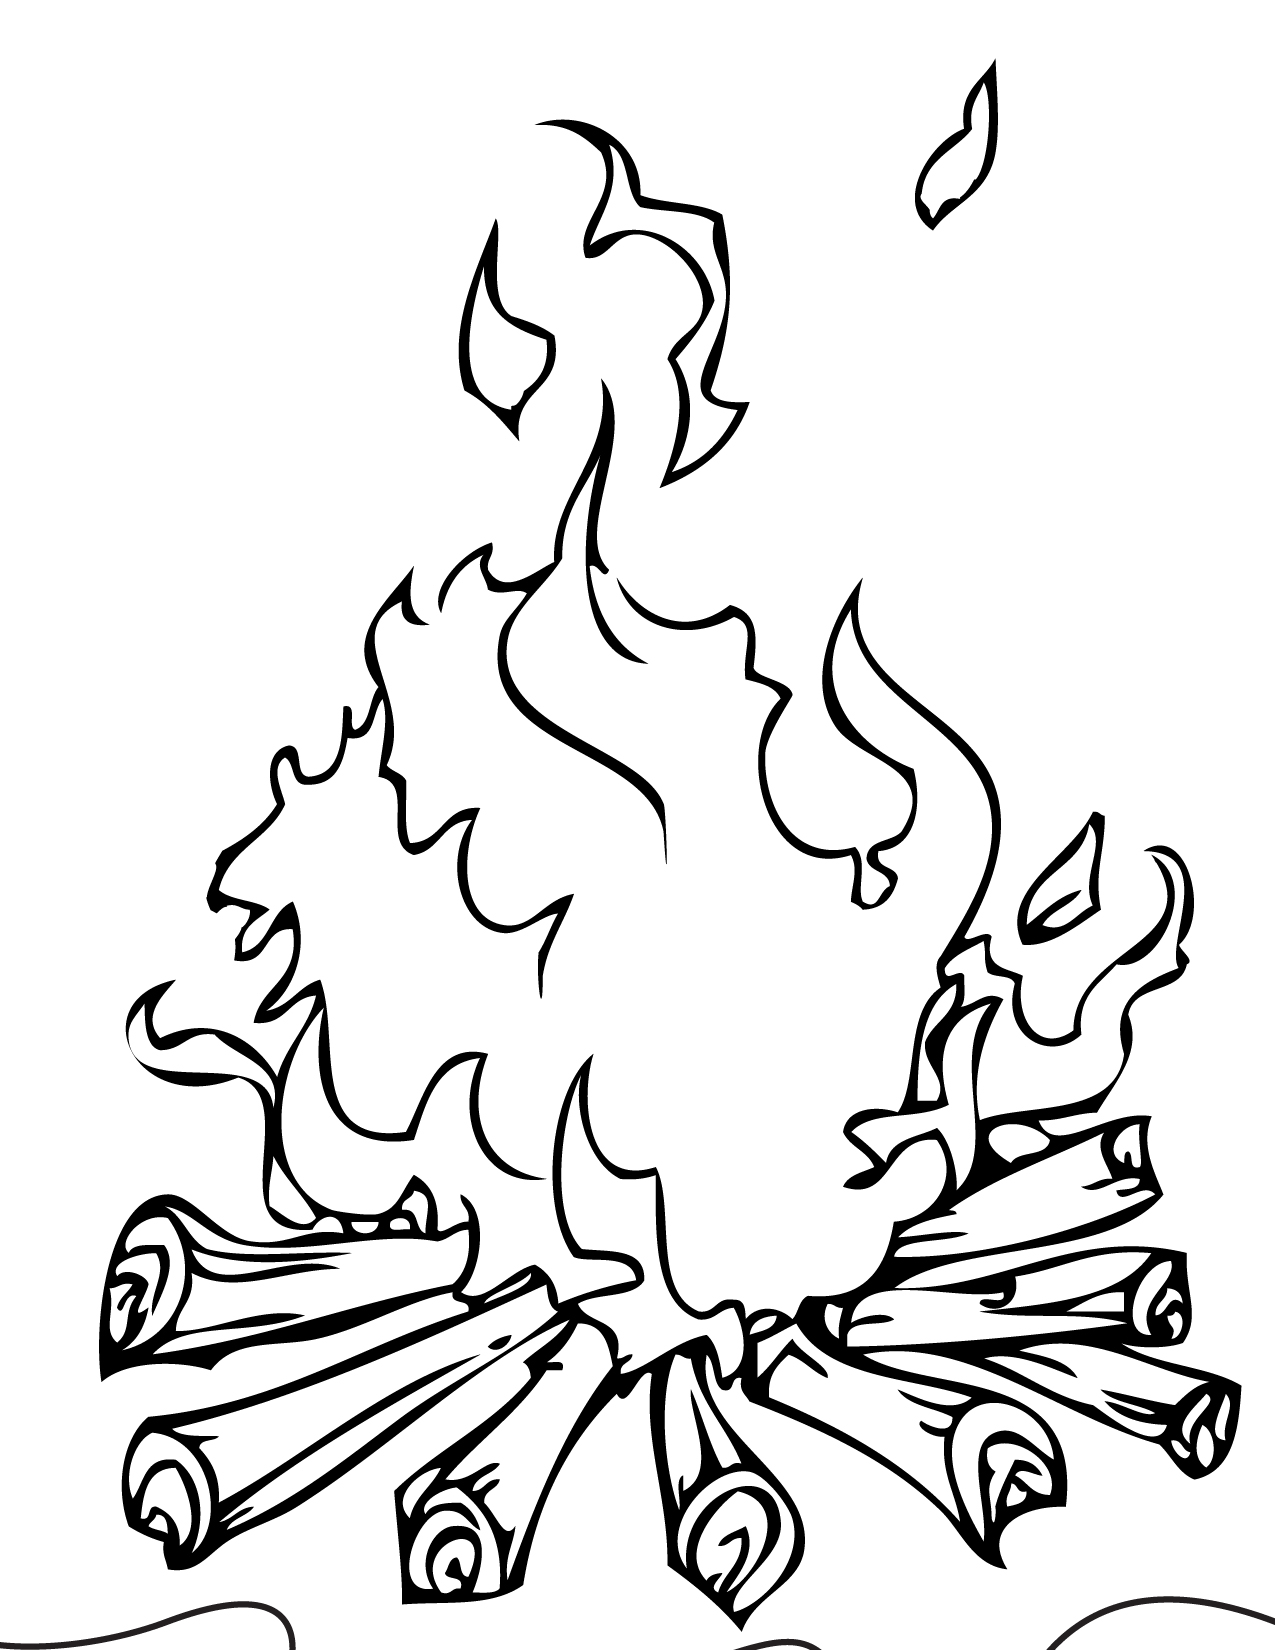 1275x1650 Campfire Coloring Page Handipoints Throughout Flame